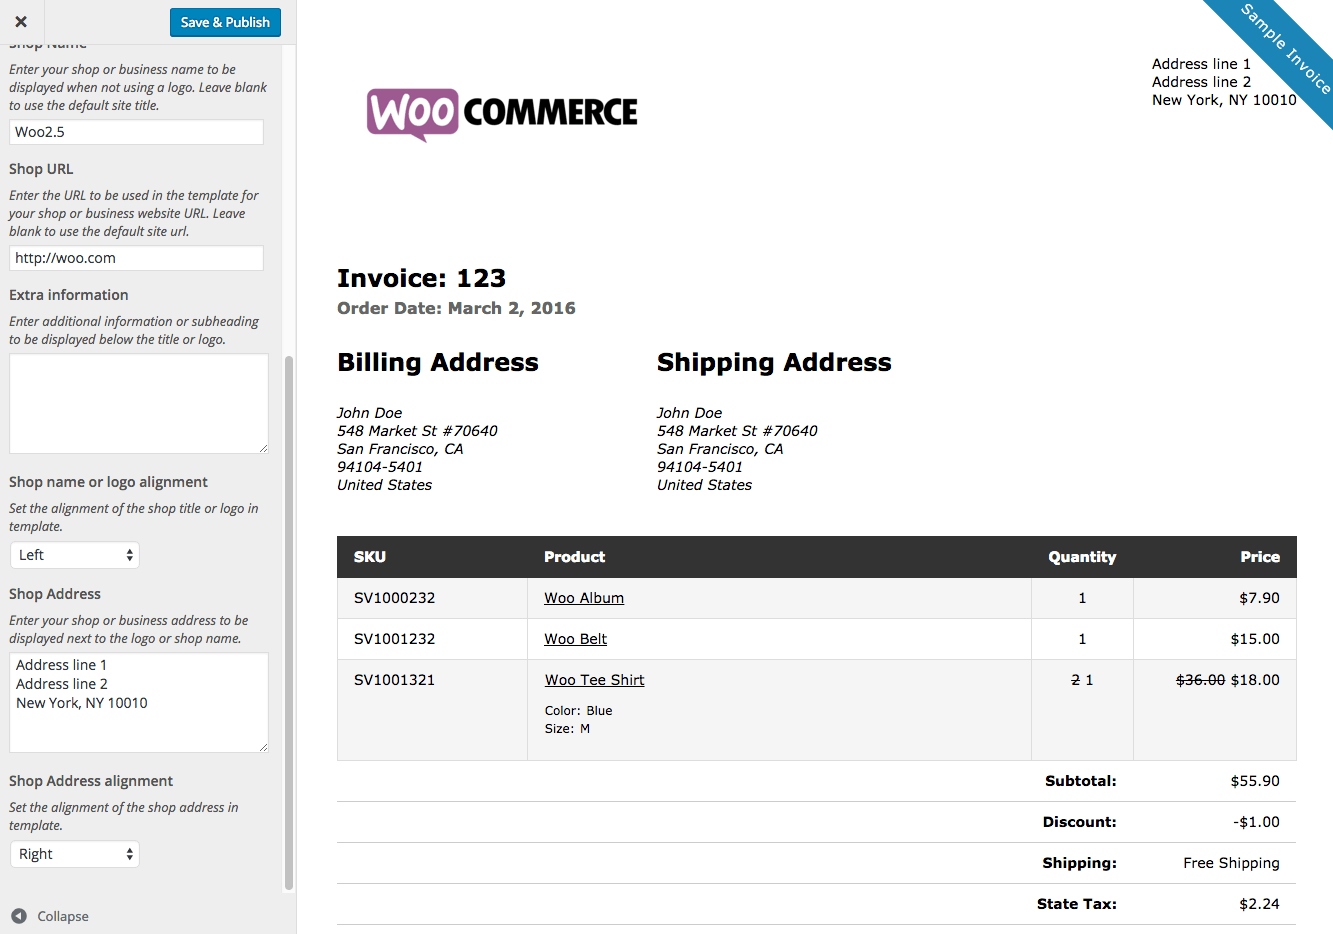 Sandiegolocksmithsus  Nice Woocommerce Print Invoices Amp Packing Lists  Woocommerce Docs With Lovely Woocommerce Print Invoices  Packing Lists Customizer With Beauteous Templates For Invoice Also Invoice Format For Consultancy In Addition What Needs To Be On An Invoice And Prforma Invoice As Well As Blank Invoice Forms Download Free Additionally Accounts Payable Invoice Automation From Docswoocommercecom With Sandiegolocksmithsus  Lovely Woocommerce Print Invoices Amp Packing Lists  Woocommerce Docs With Beauteous Woocommerce Print Invoices  Packing Lists Customizer And Nice Templates For Invoice Also Invoice Format For Consultancy In Addition What Needs To Be On An Invoice From Docswoocommercecom